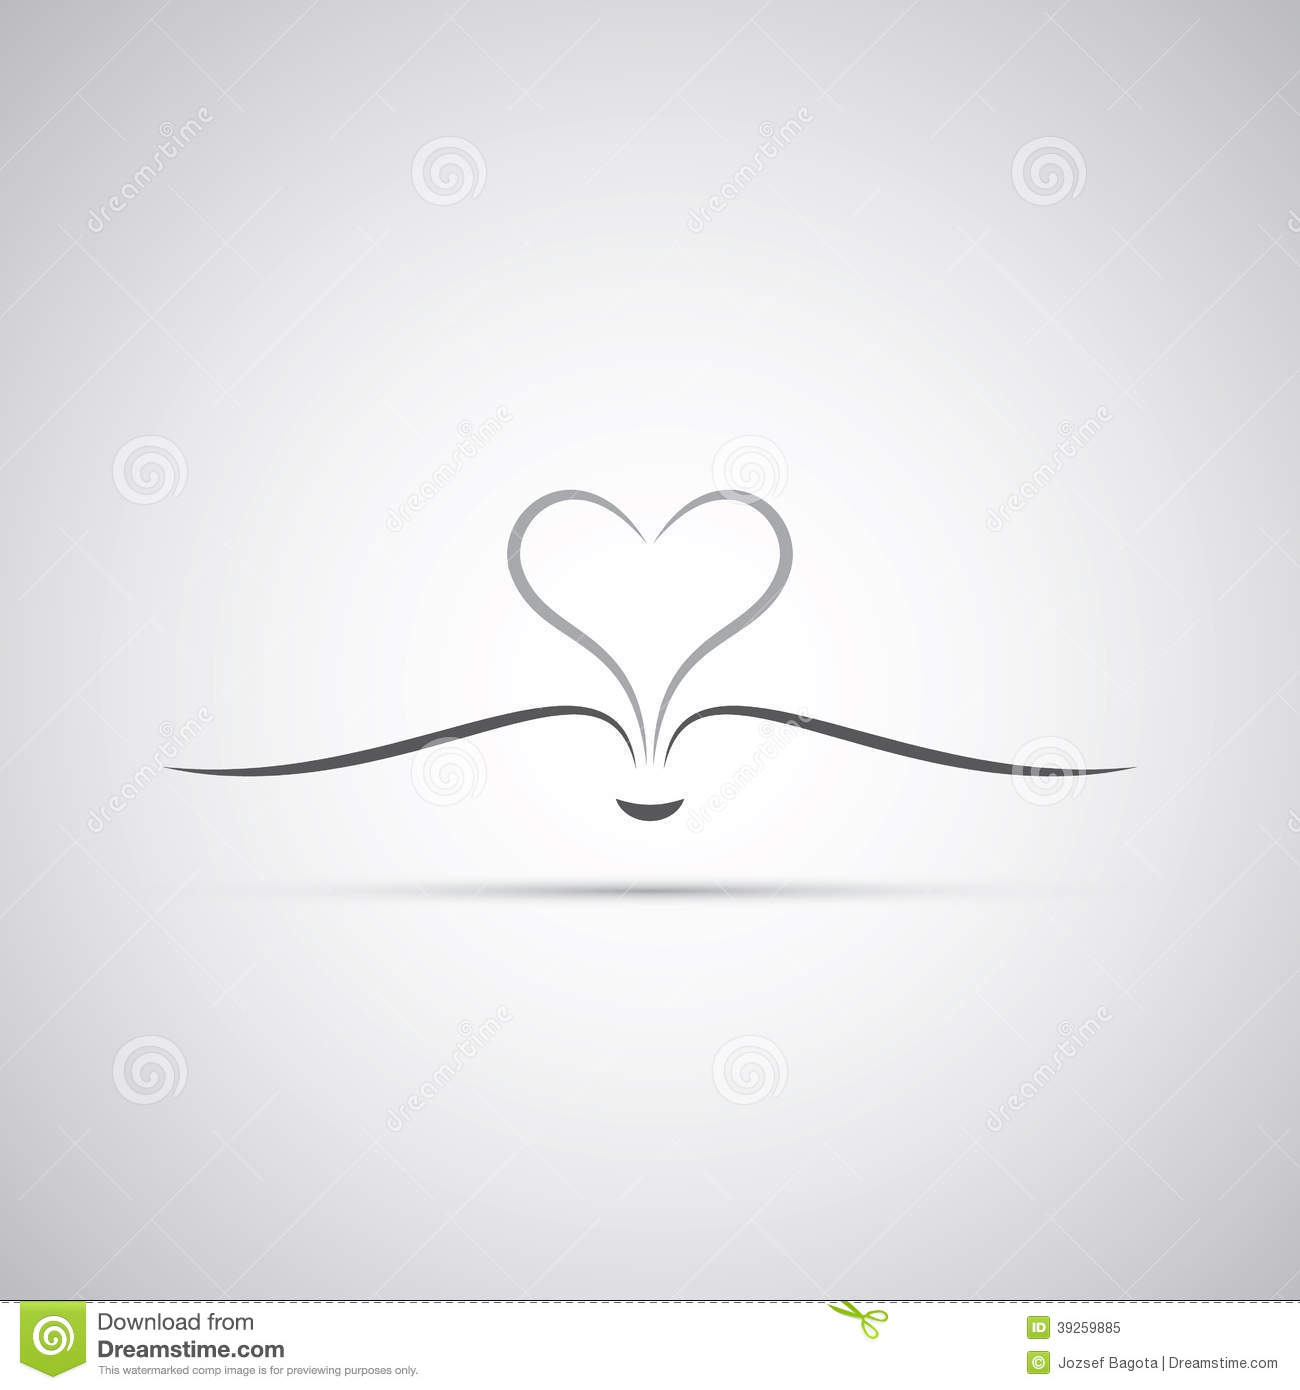 Open book clipart with hearts jpg black and white Open Book Clip Art Heart – Clipart Free Download jpg black and white